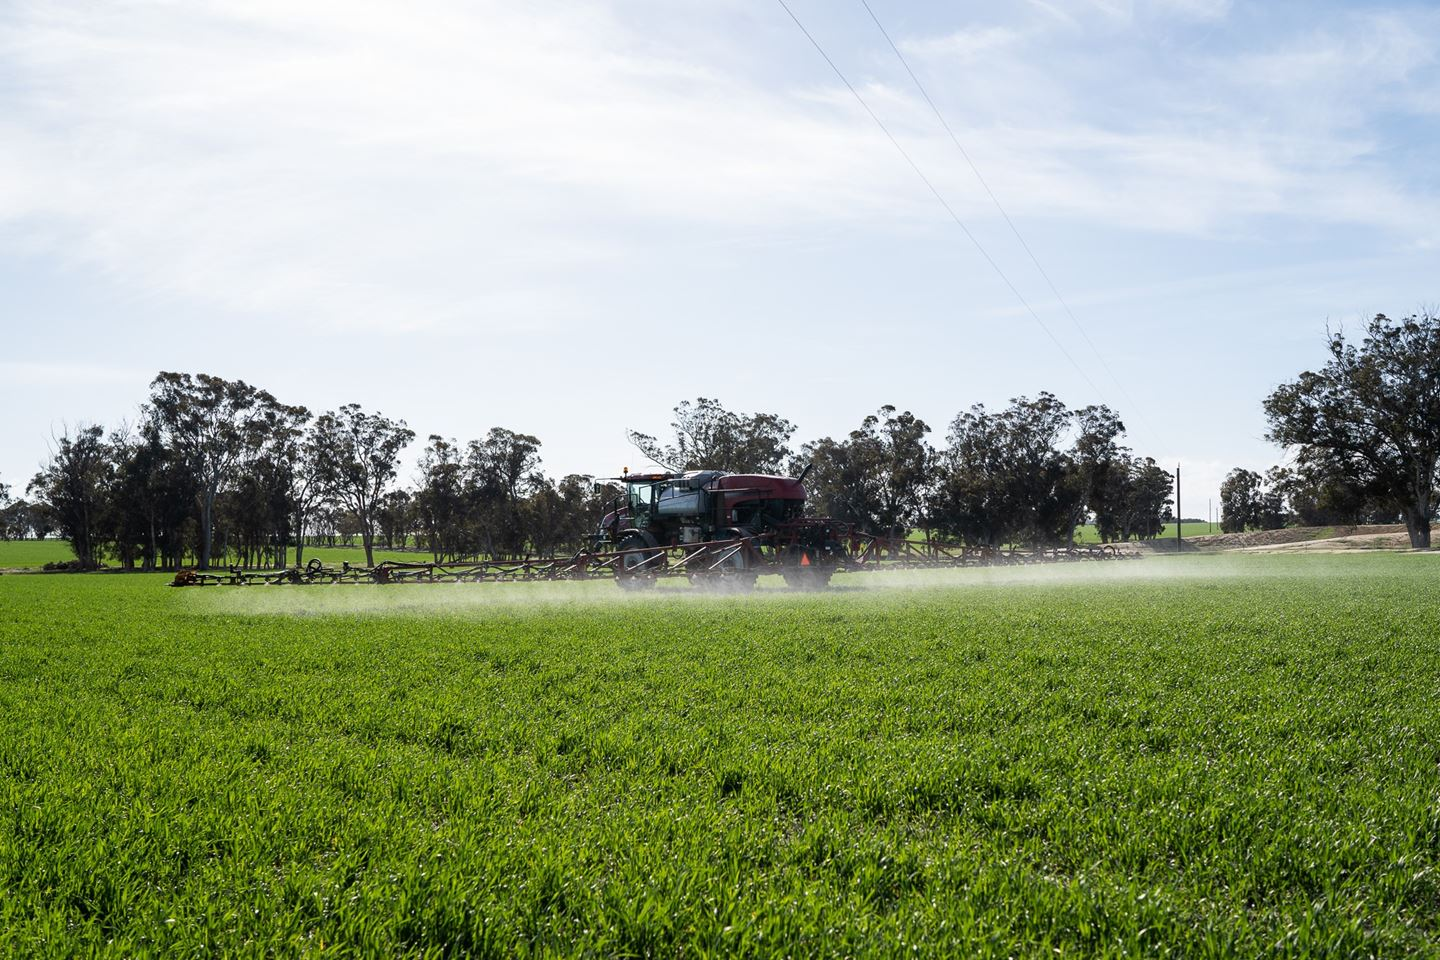 A red sprayer moving through a green paddock